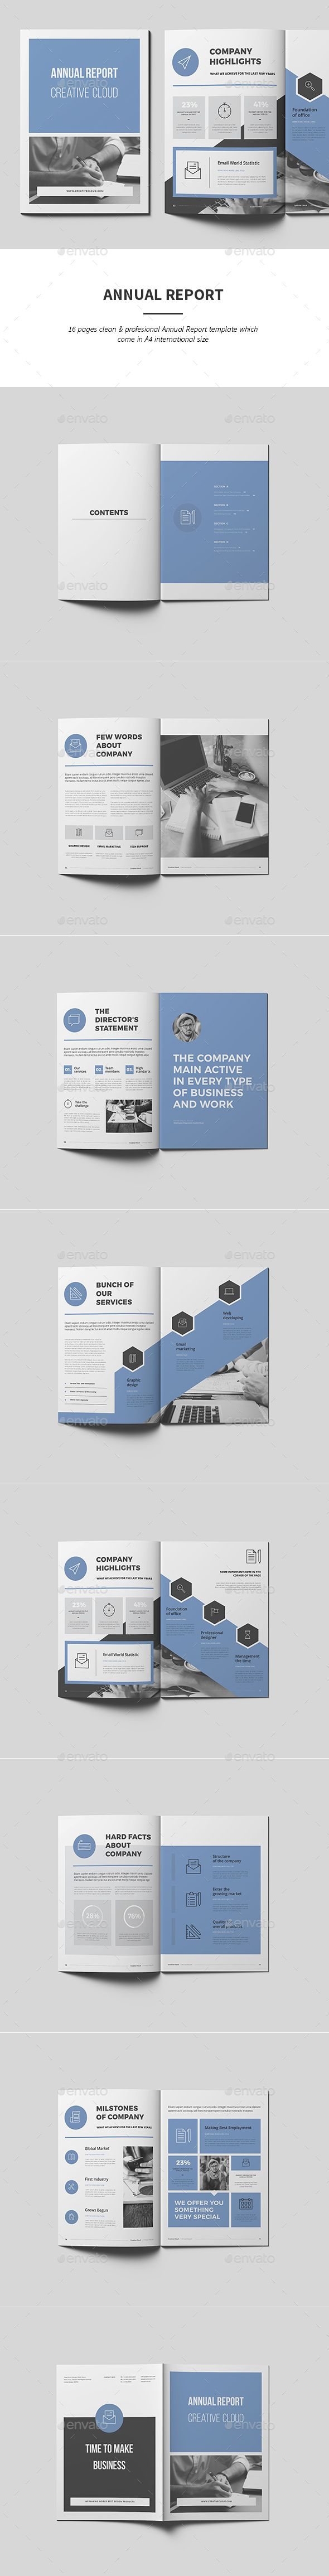 66 best corporate design images on pinterest banner template